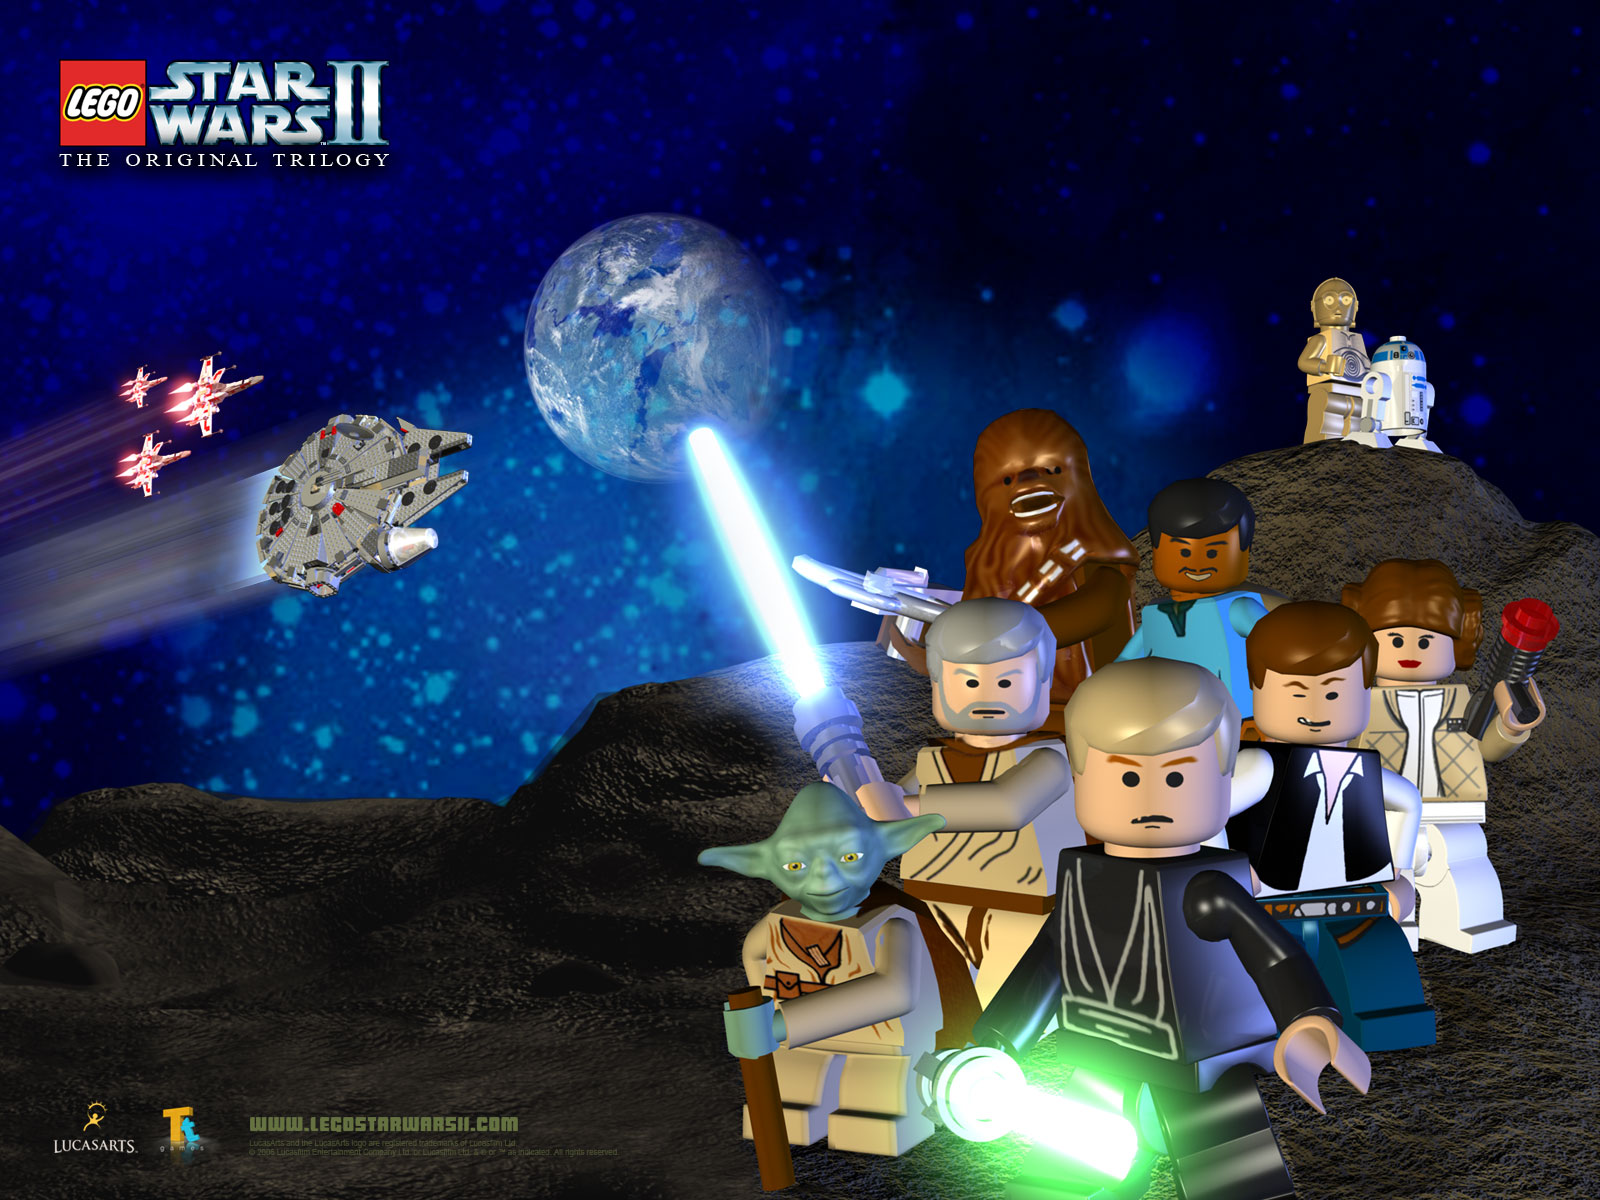 Wallpaper Tapety Lego Star Wars The Complete Saga 1221993 Hd Wallpaper Backgrounds Download